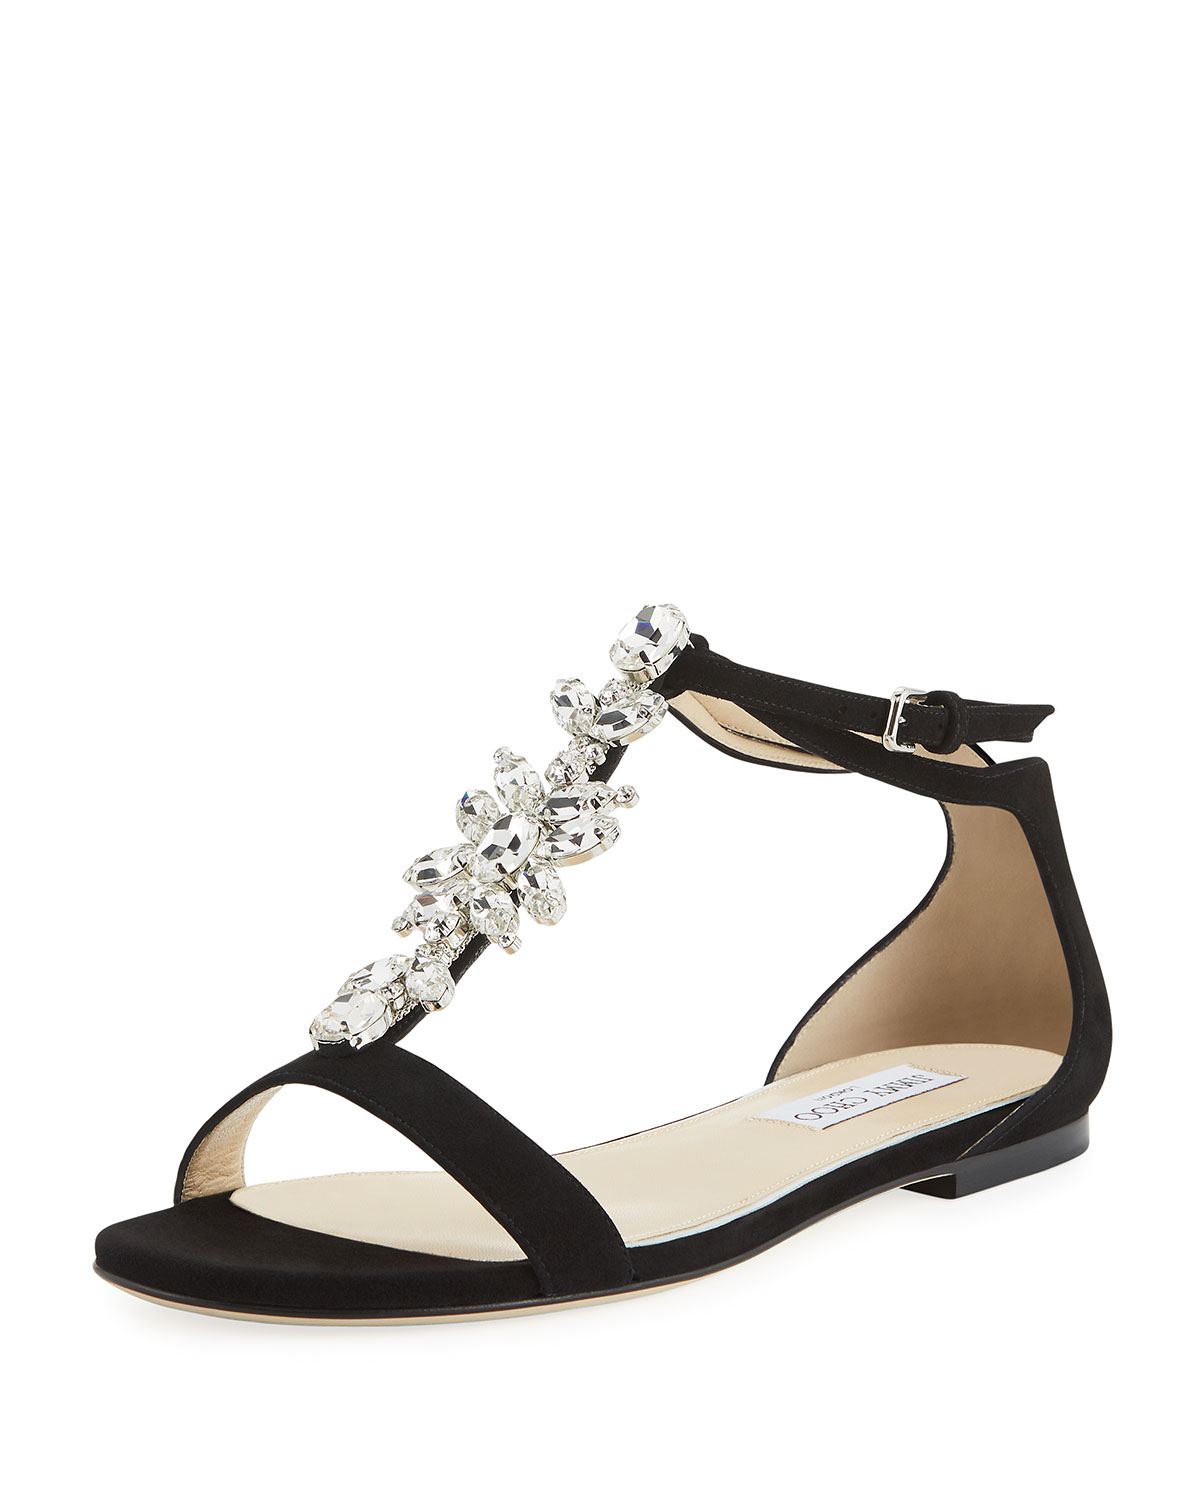 Naia flat sandals with crystal bucklesJimmy Choo London 2VIFyw9a